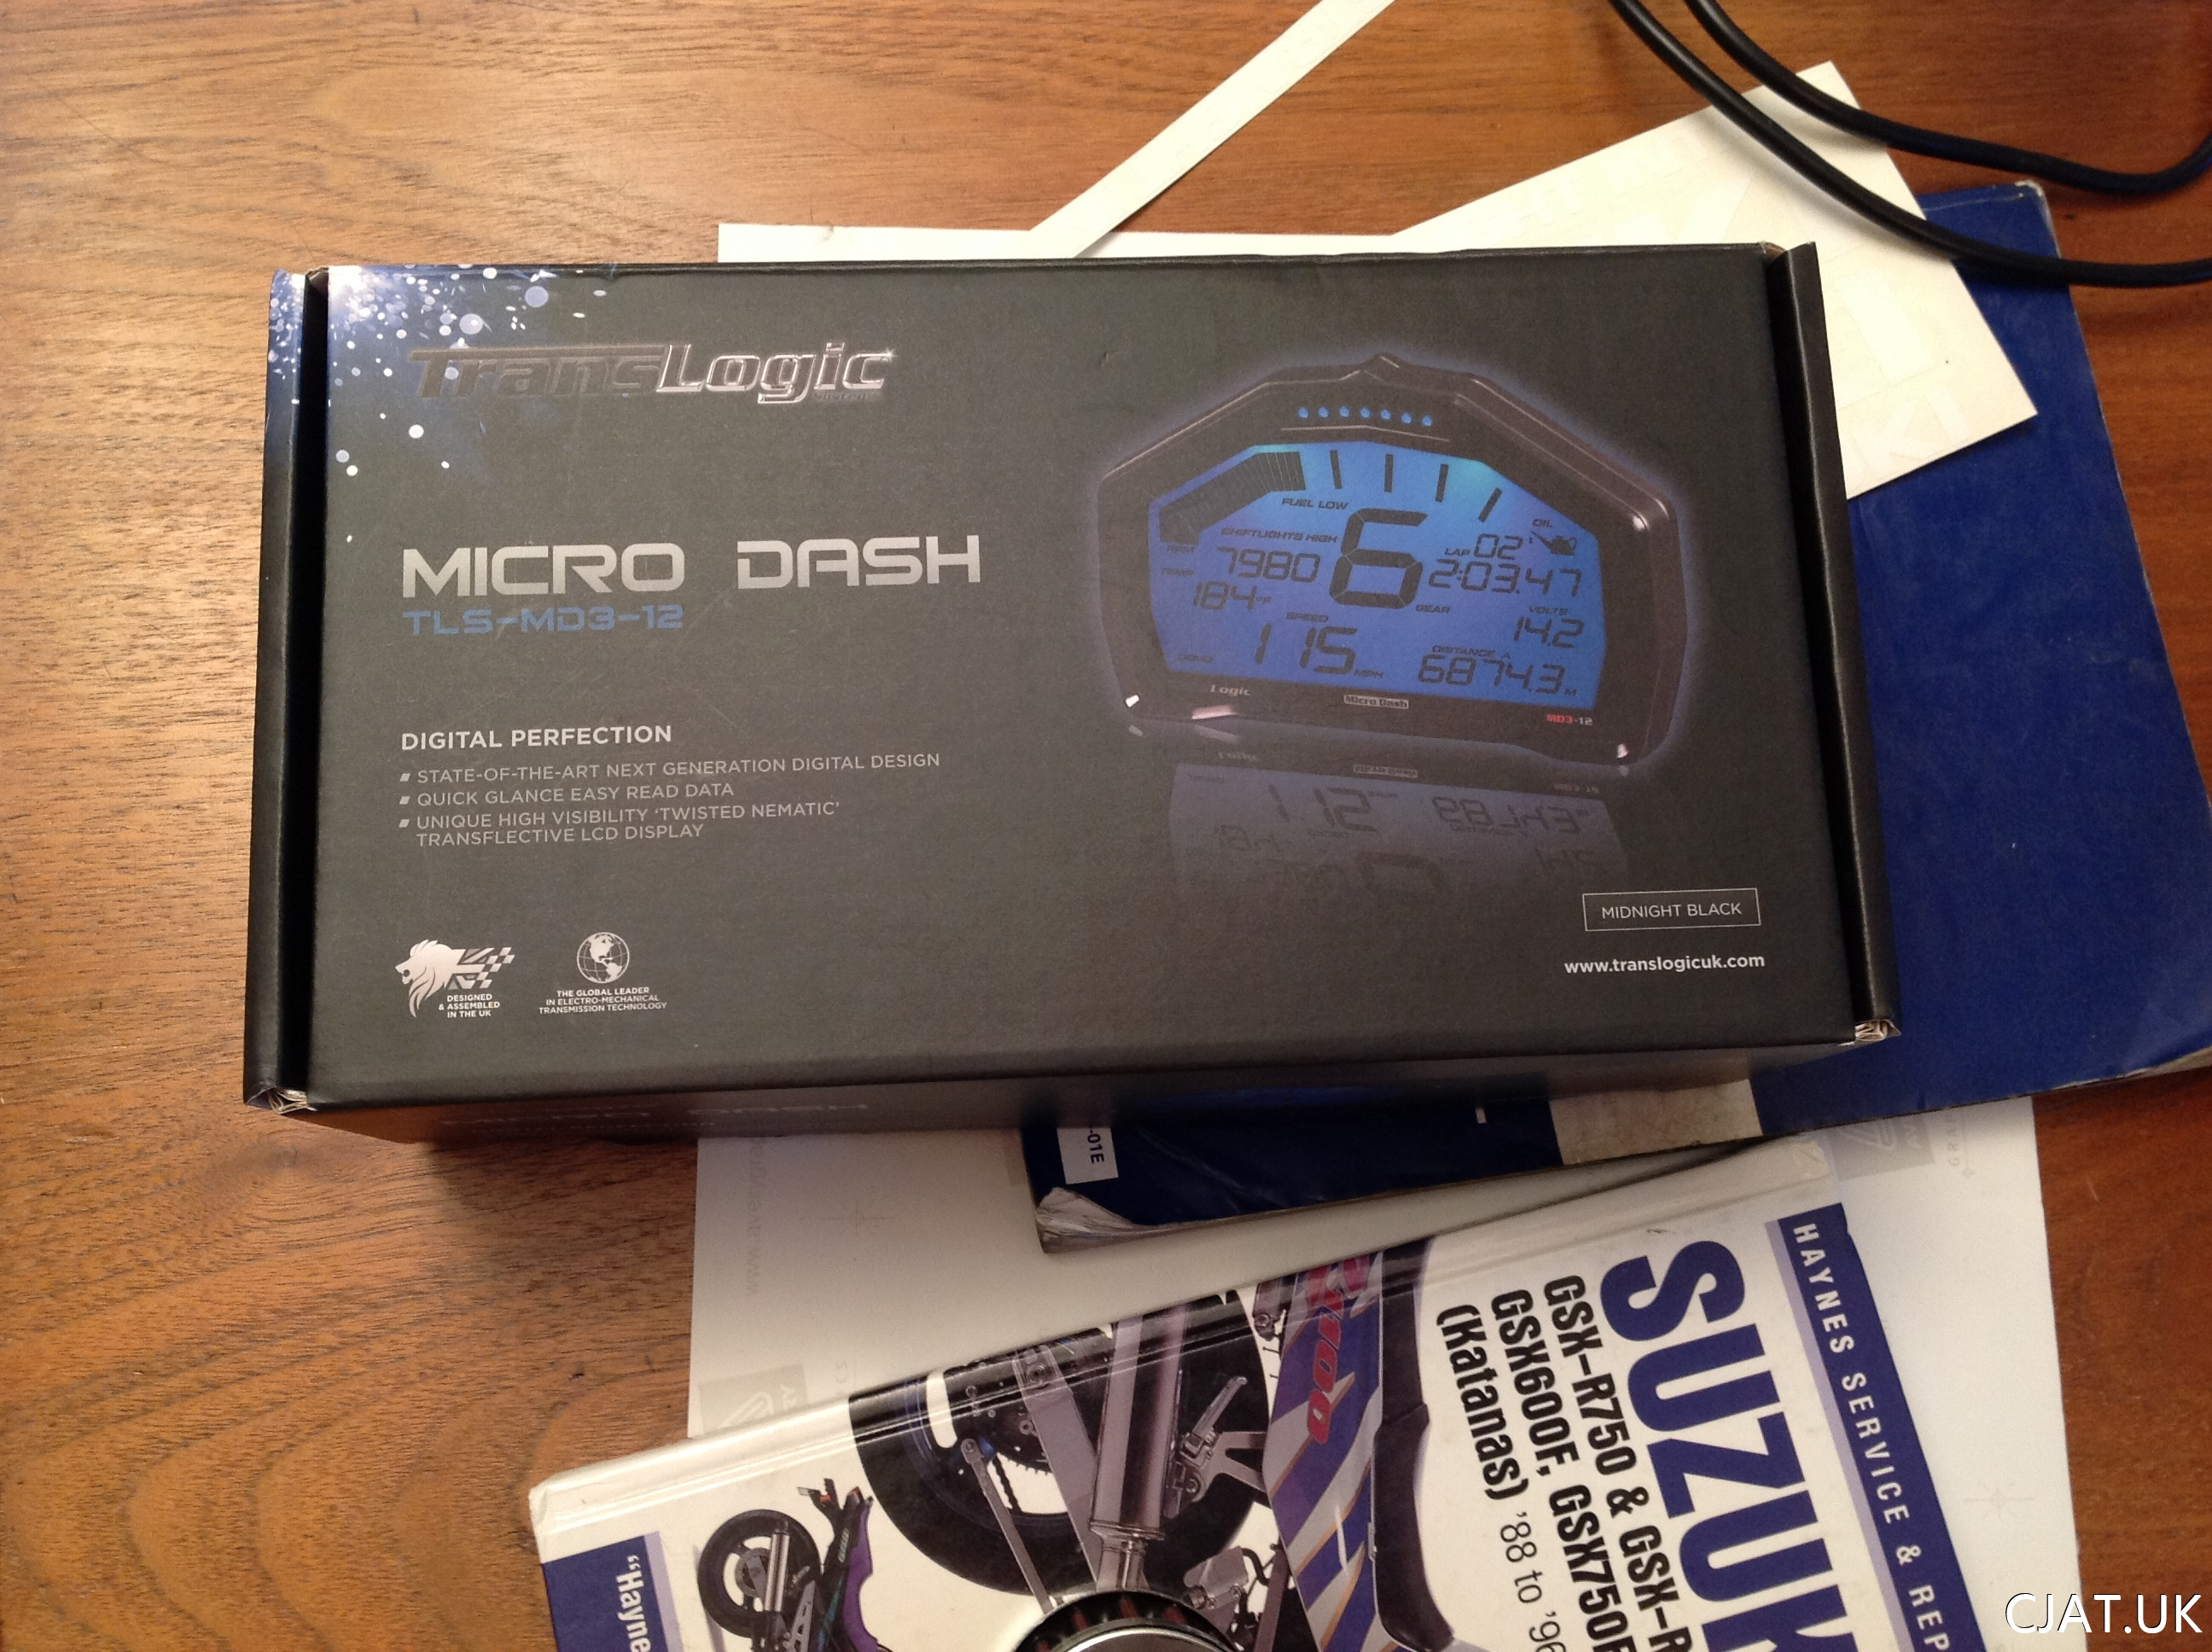 15. New Speedo – Translogic MircoDash3